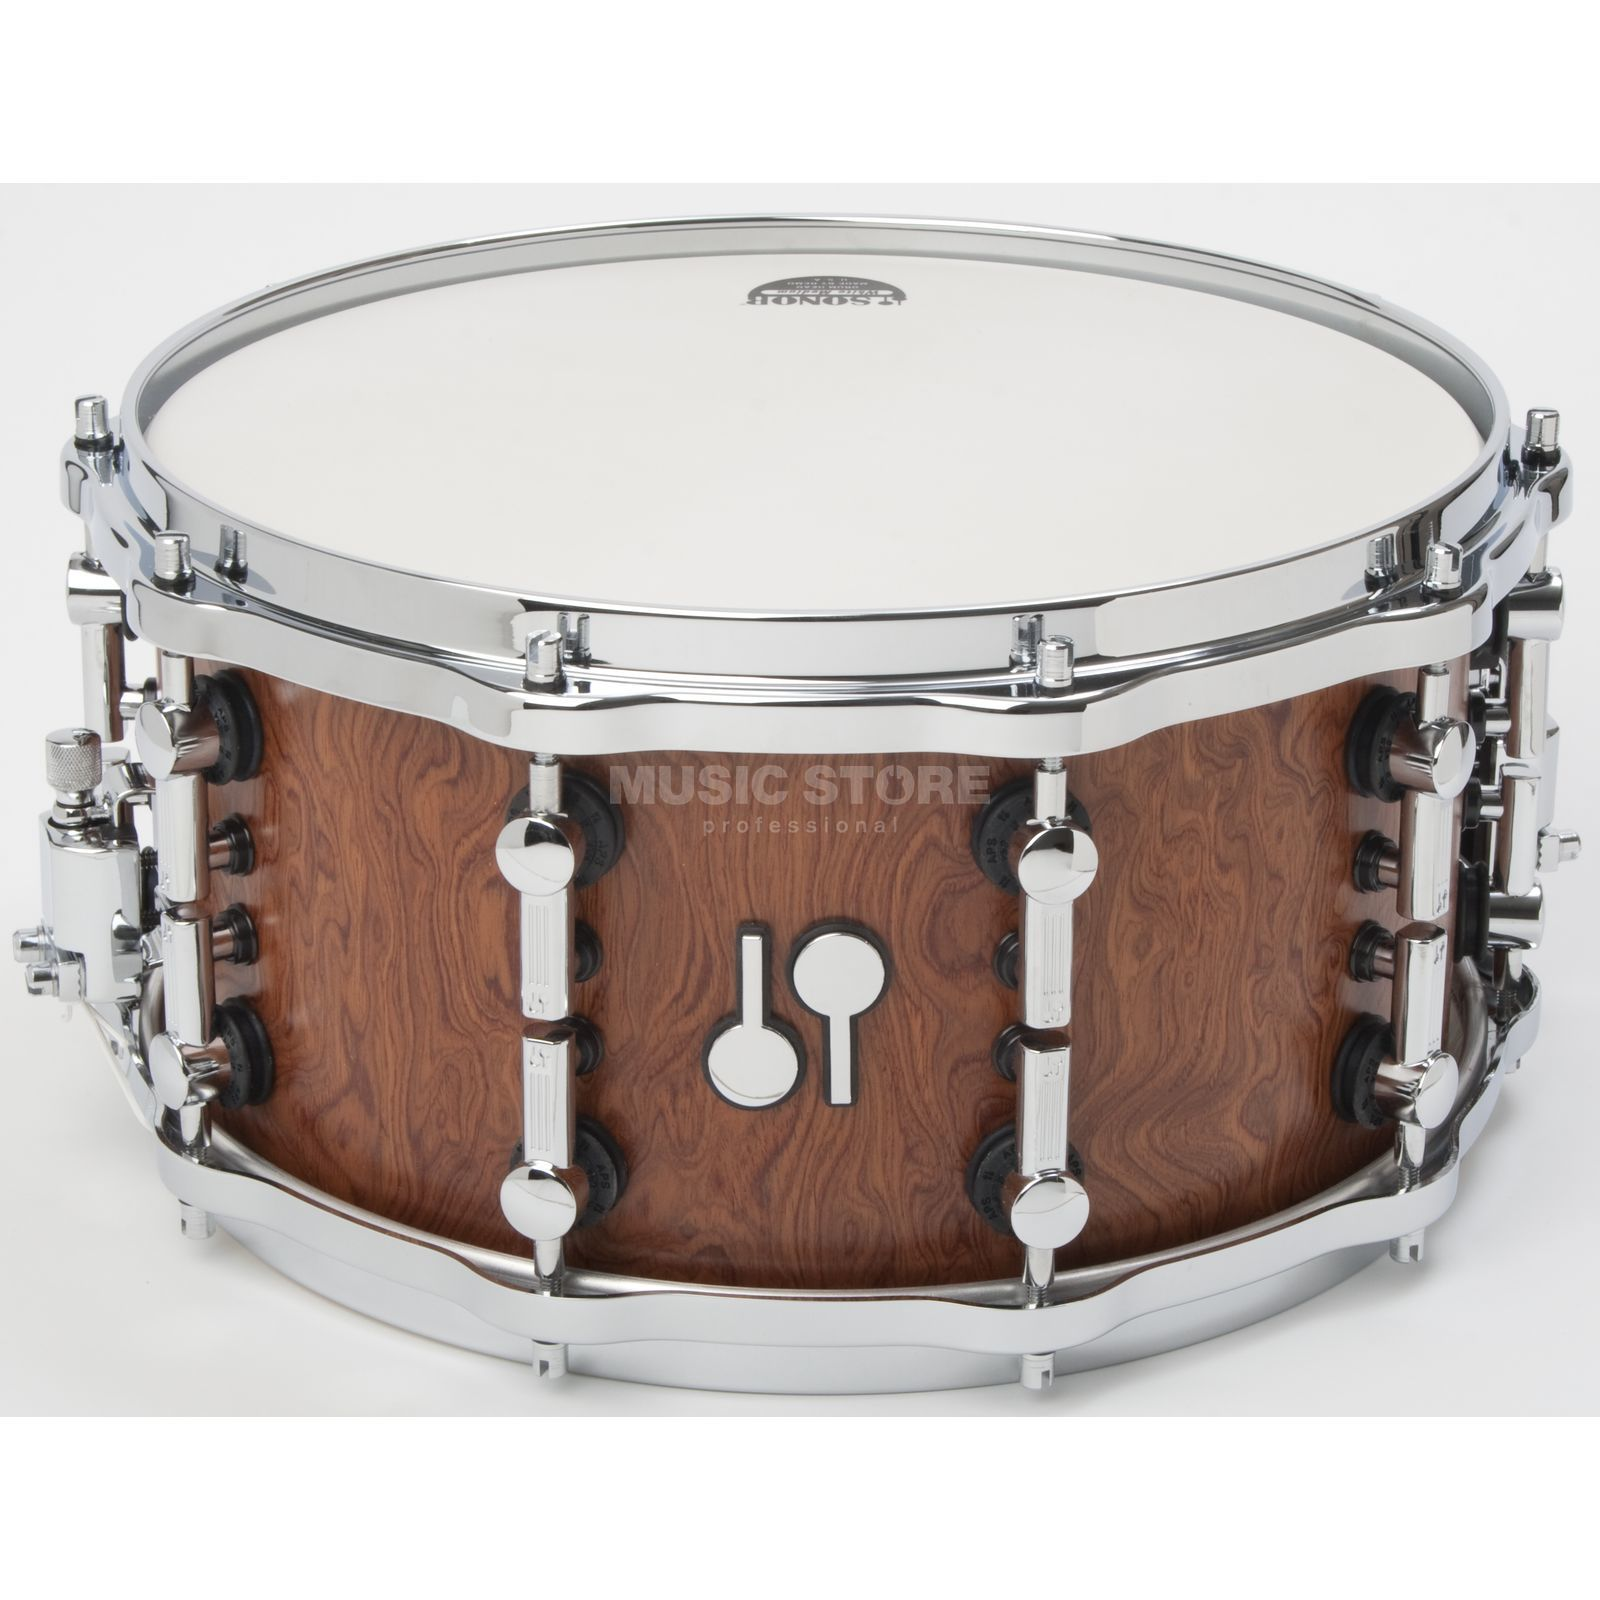 "Sonor SQ2 Maple Snare 14""x7"", Bubinga Furnier, matt Produktbild"